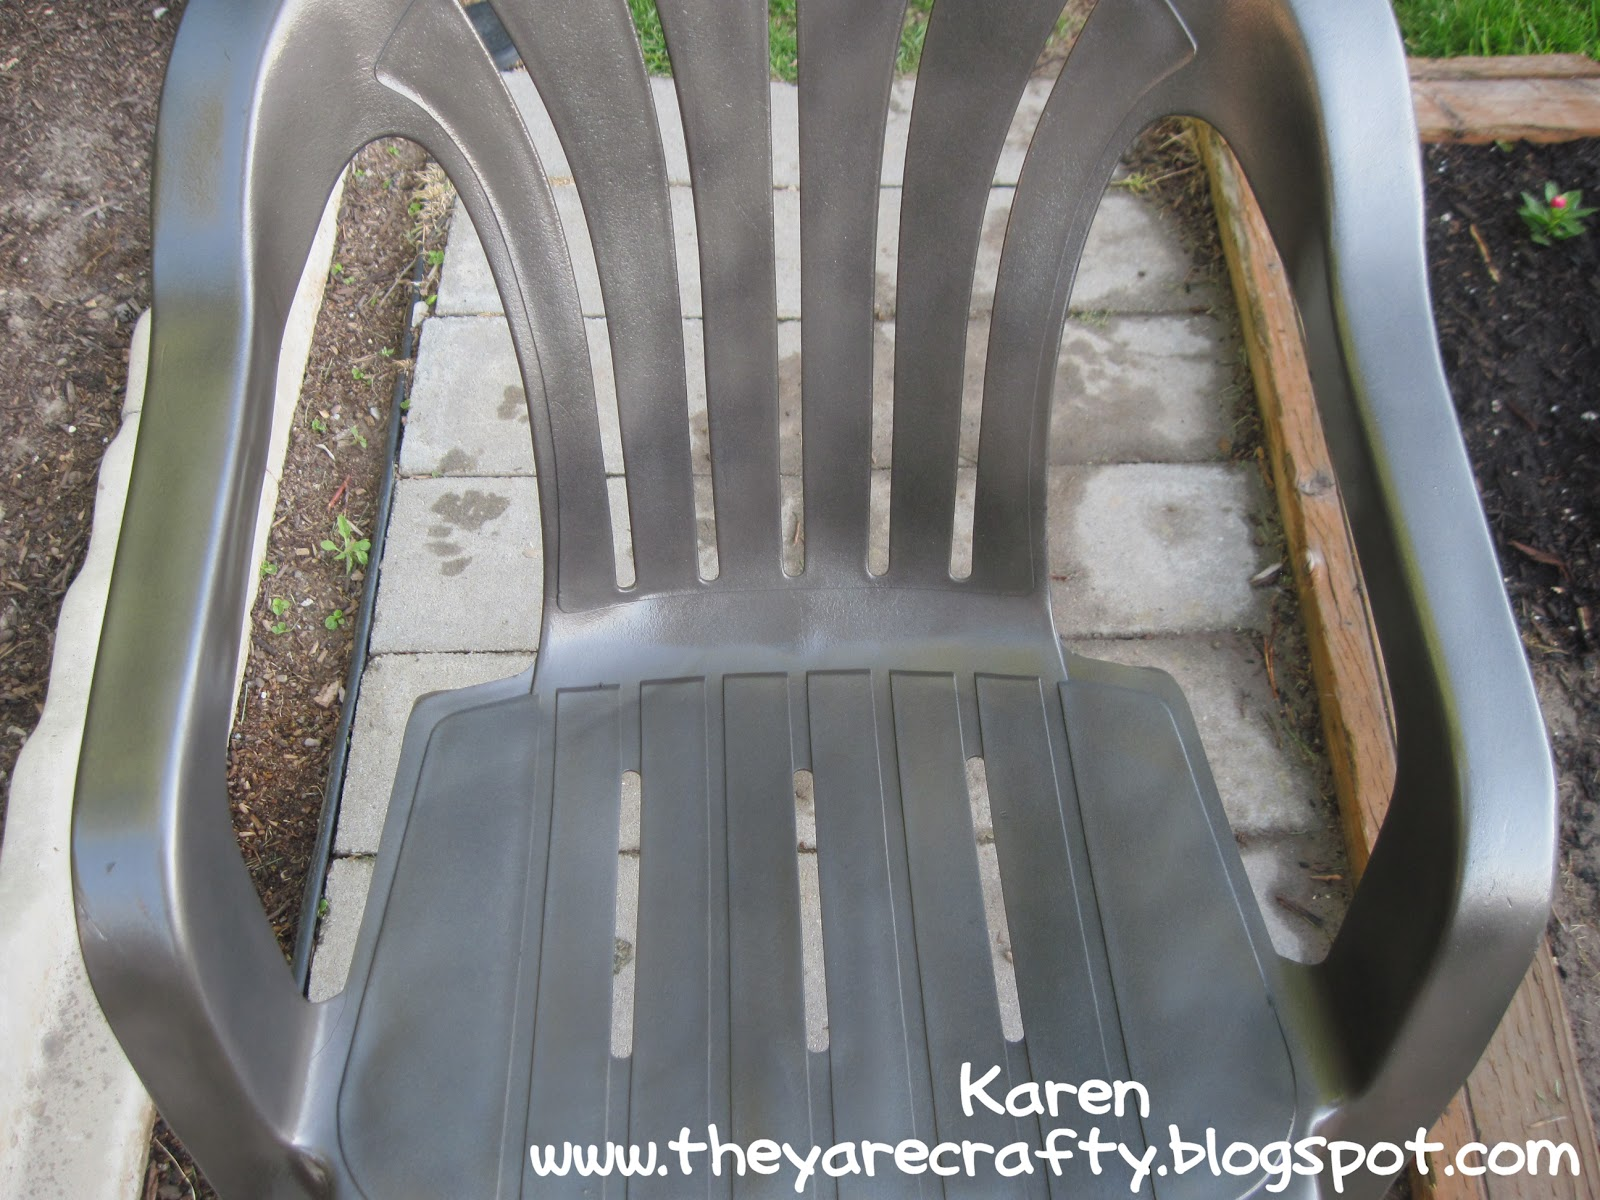 How to repaint plastic lawn chairs and furniture plastic outdoor - Spray Paint Those Old Ugly Plastic Lawn Chairs